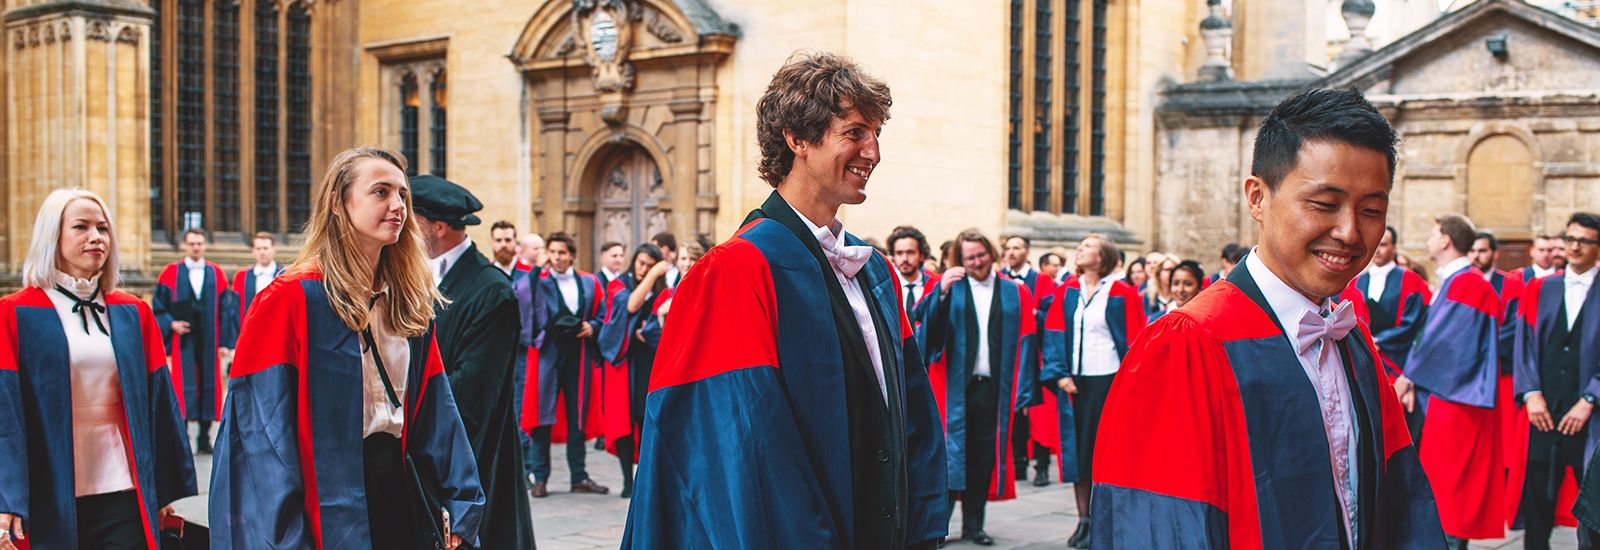 A photo of DPhil graduands wearing red and blue robes outside the Sheldonian Theatre